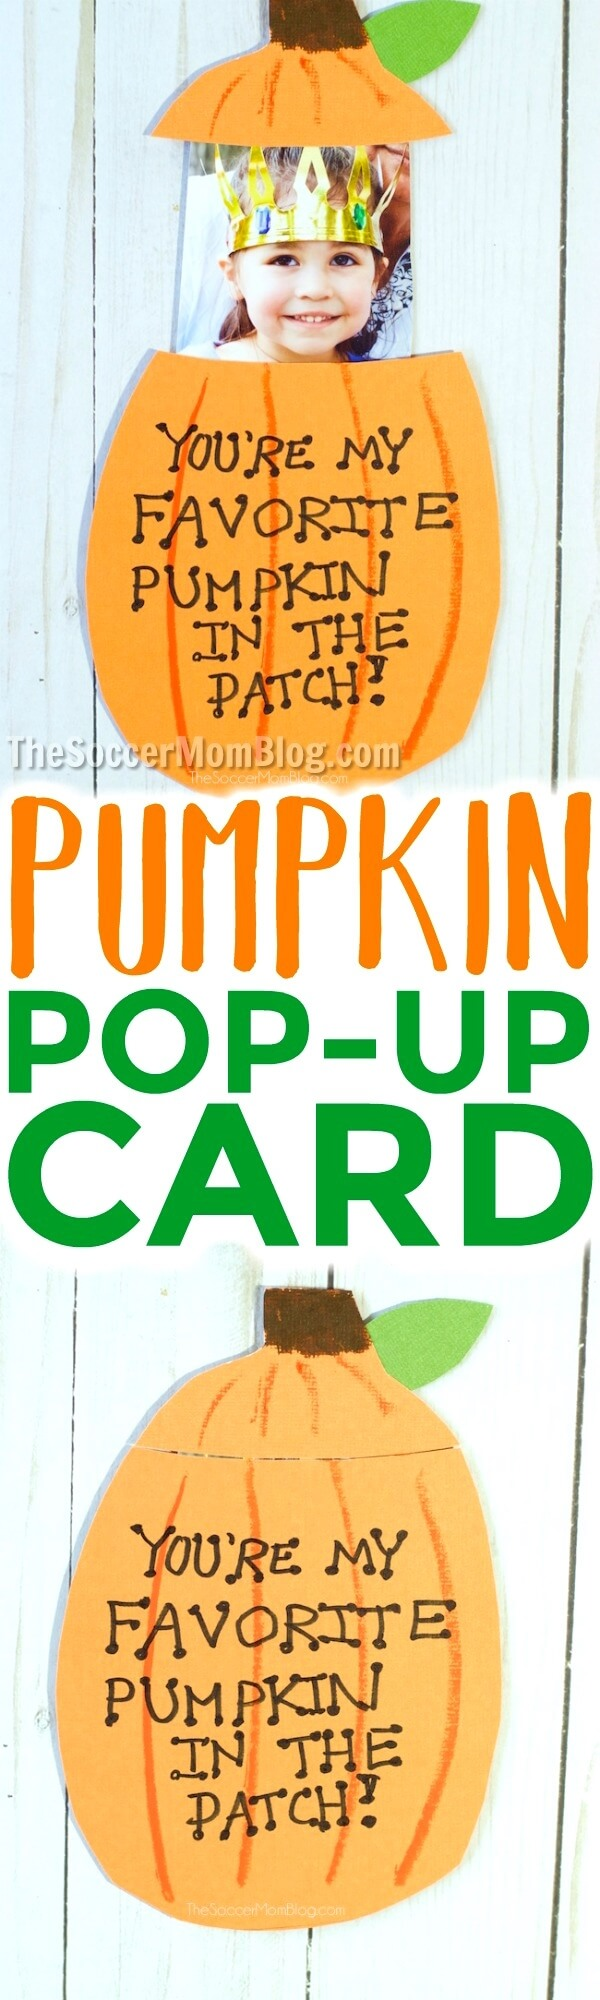 Super cute kid-made pop-up photo pumpkin card that's perfect for Fall holidays - Thanksgiving & Halloween. Free printable pattern!